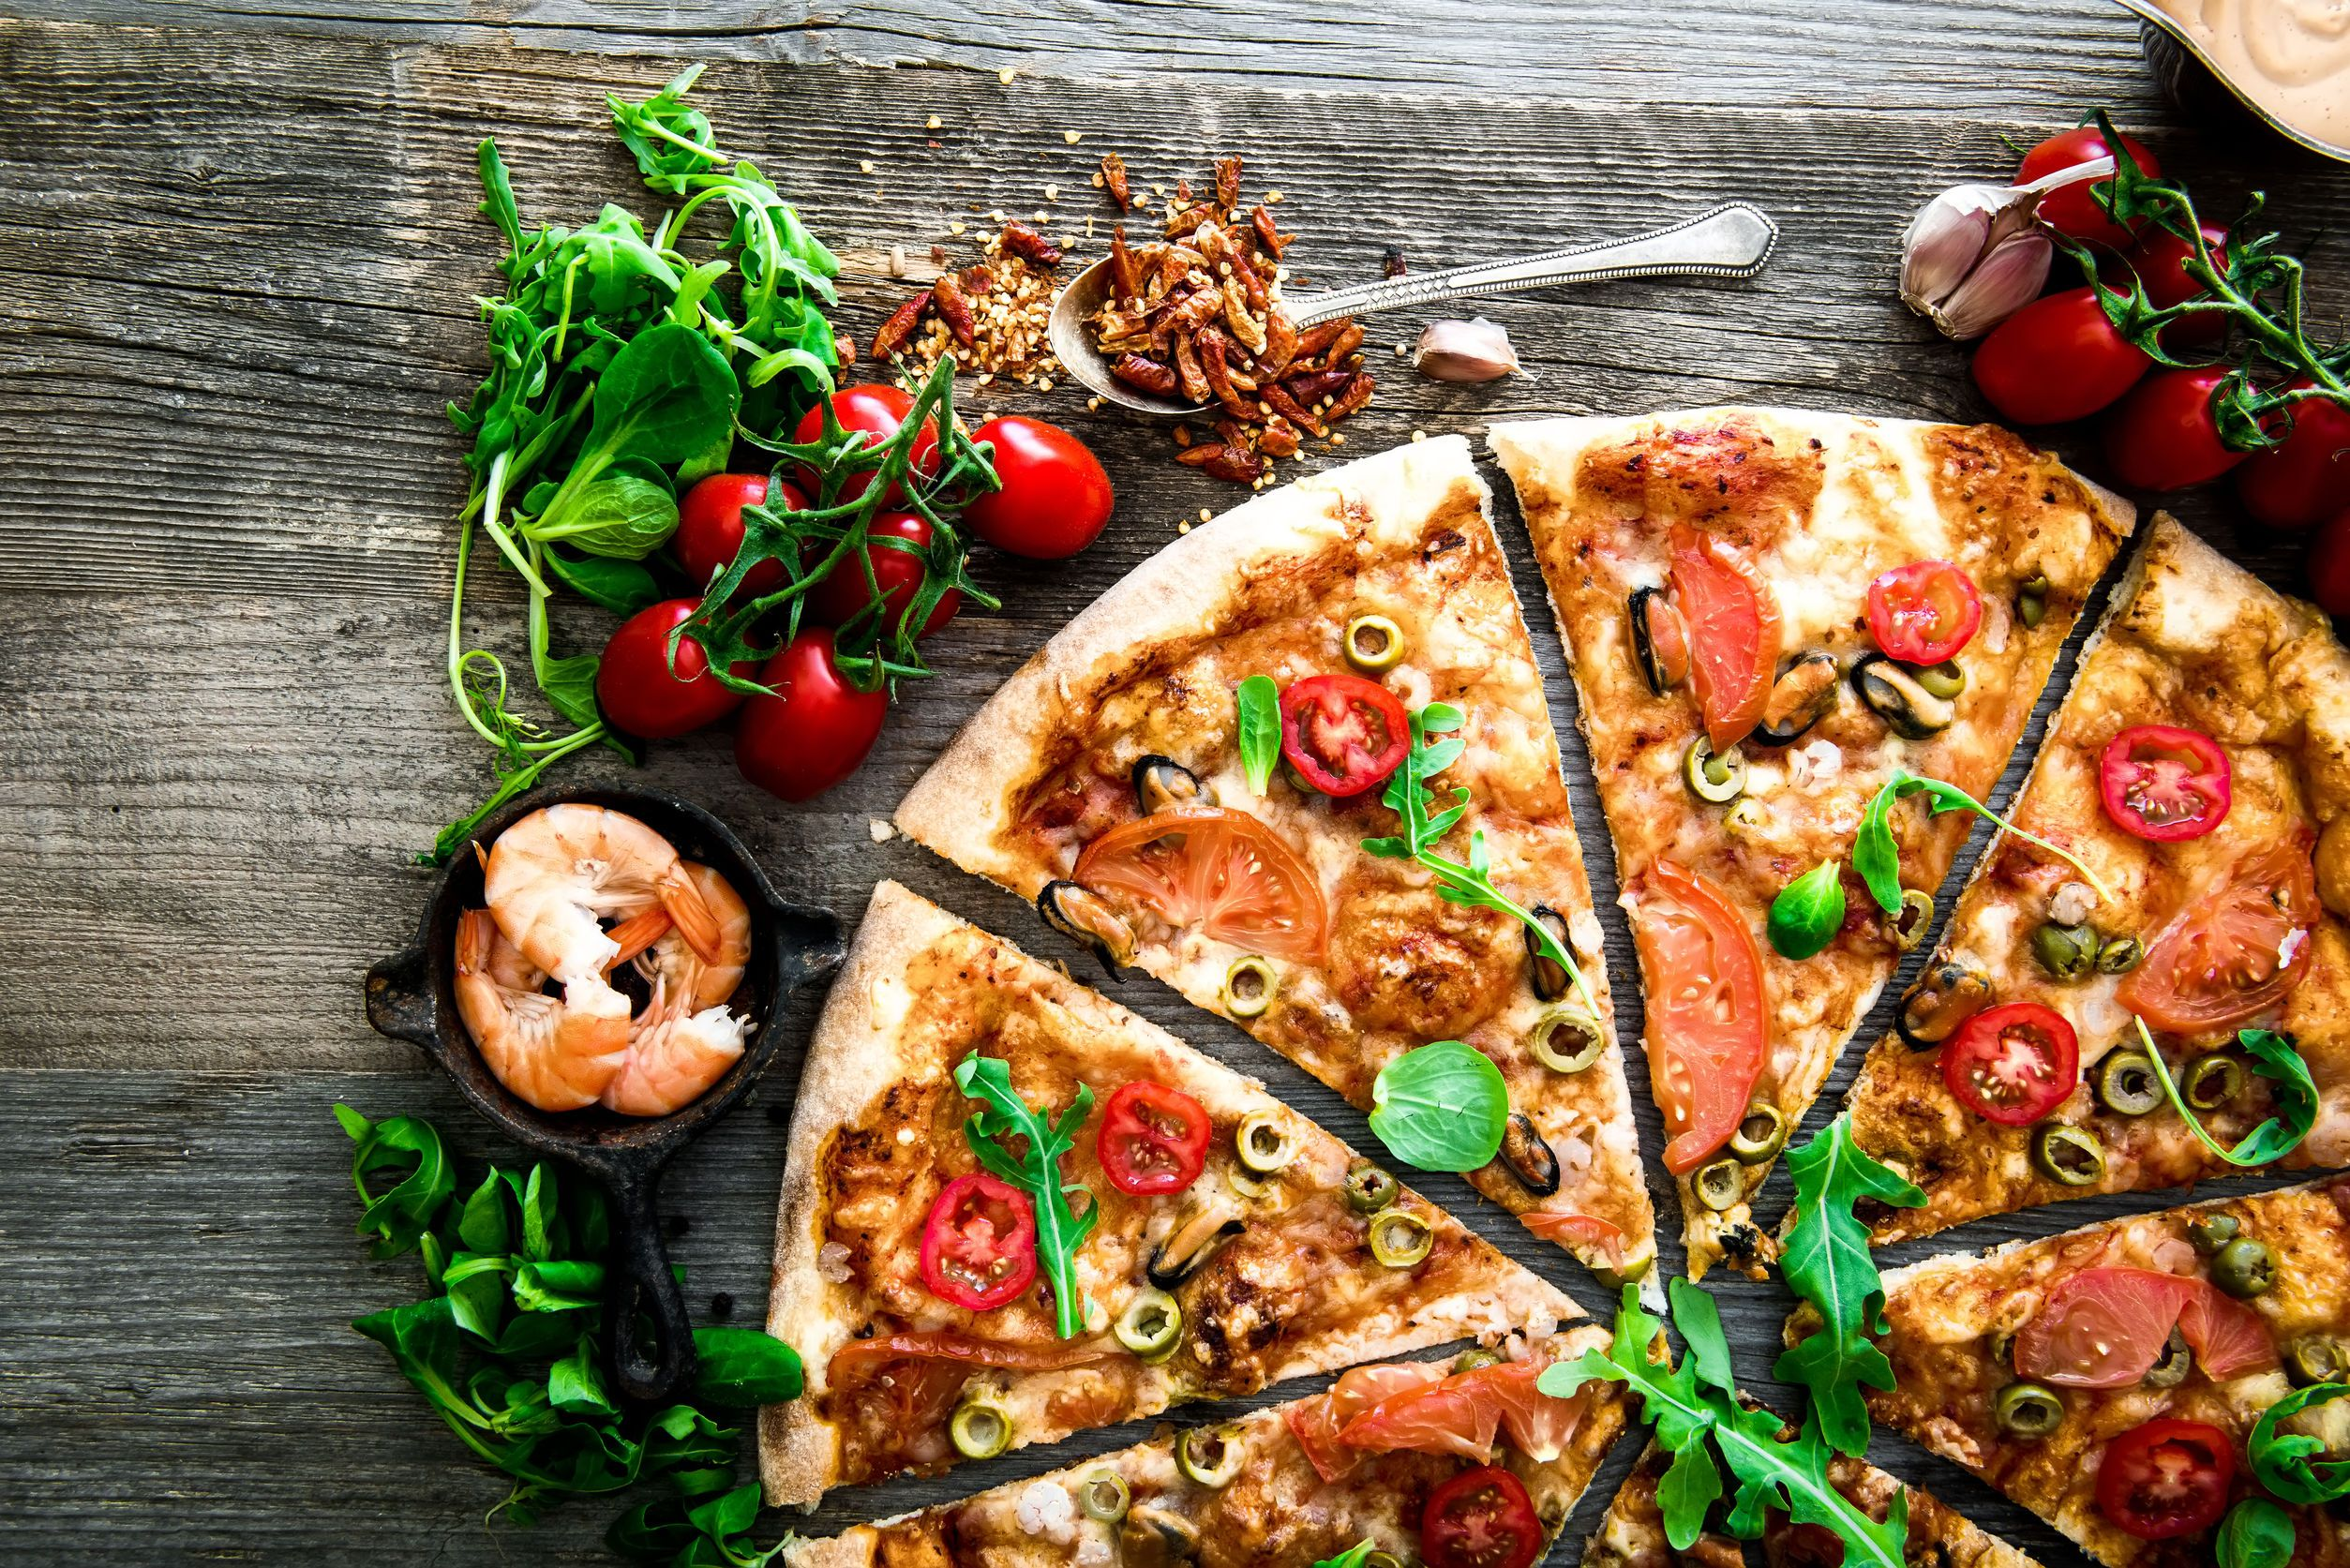 mona lisa pizza menu offers appetizers salads wings sandwiches house specialty and signature pi tasty vegetarian recipes easy healthy eating healthy eating mona lisa pizza menu offers appetizers